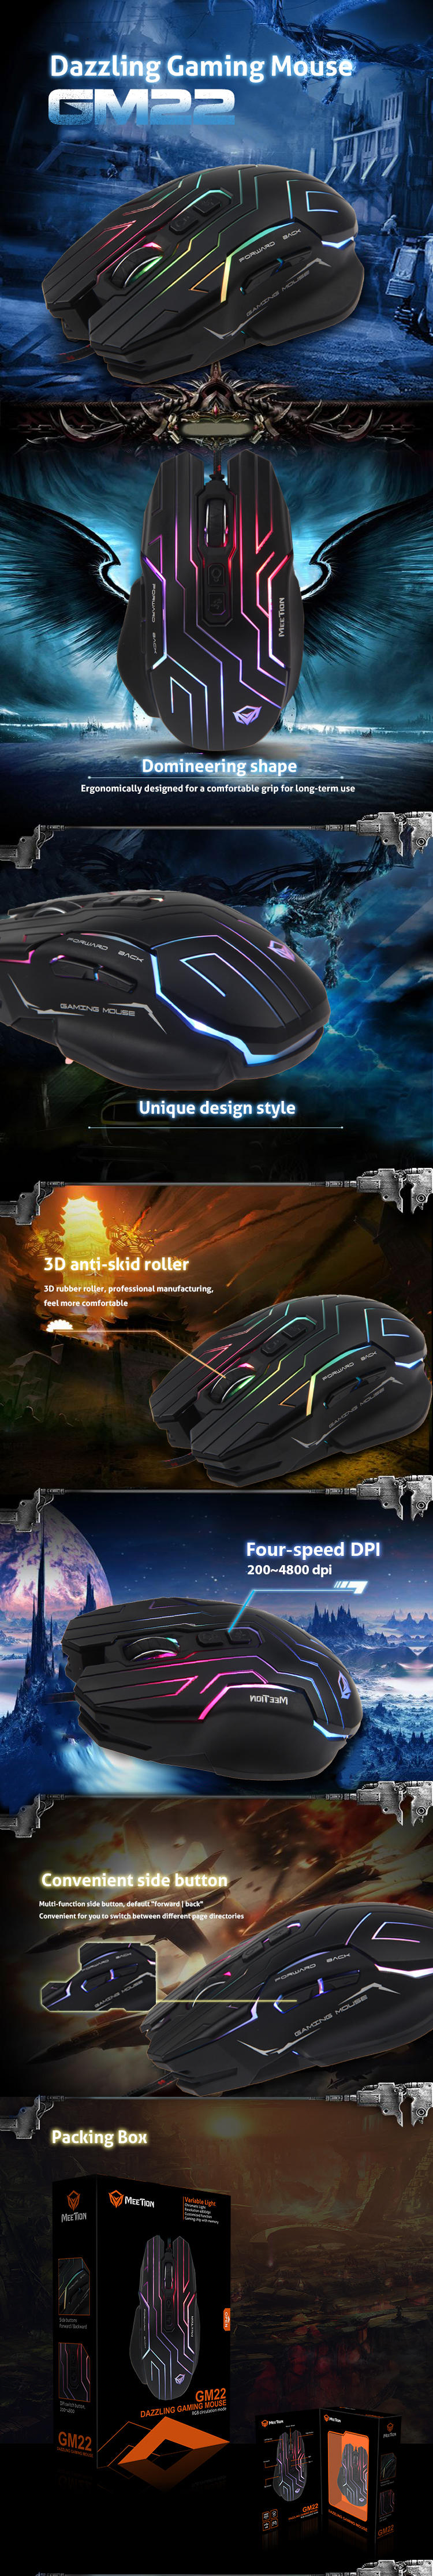 Meetion good gaming mice company-1